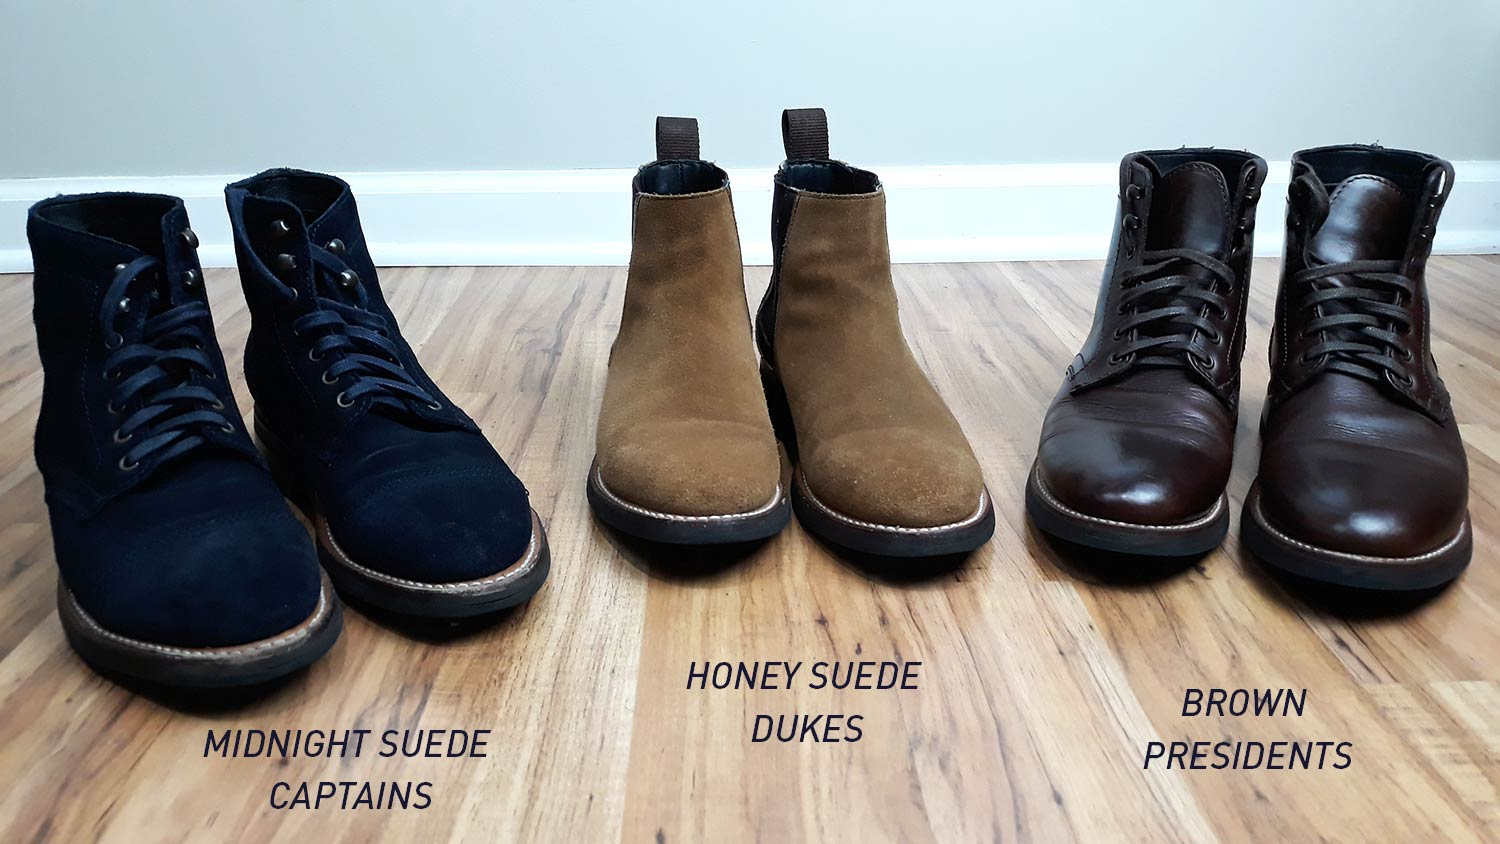 Thursday Boots Review: 4 Years Later